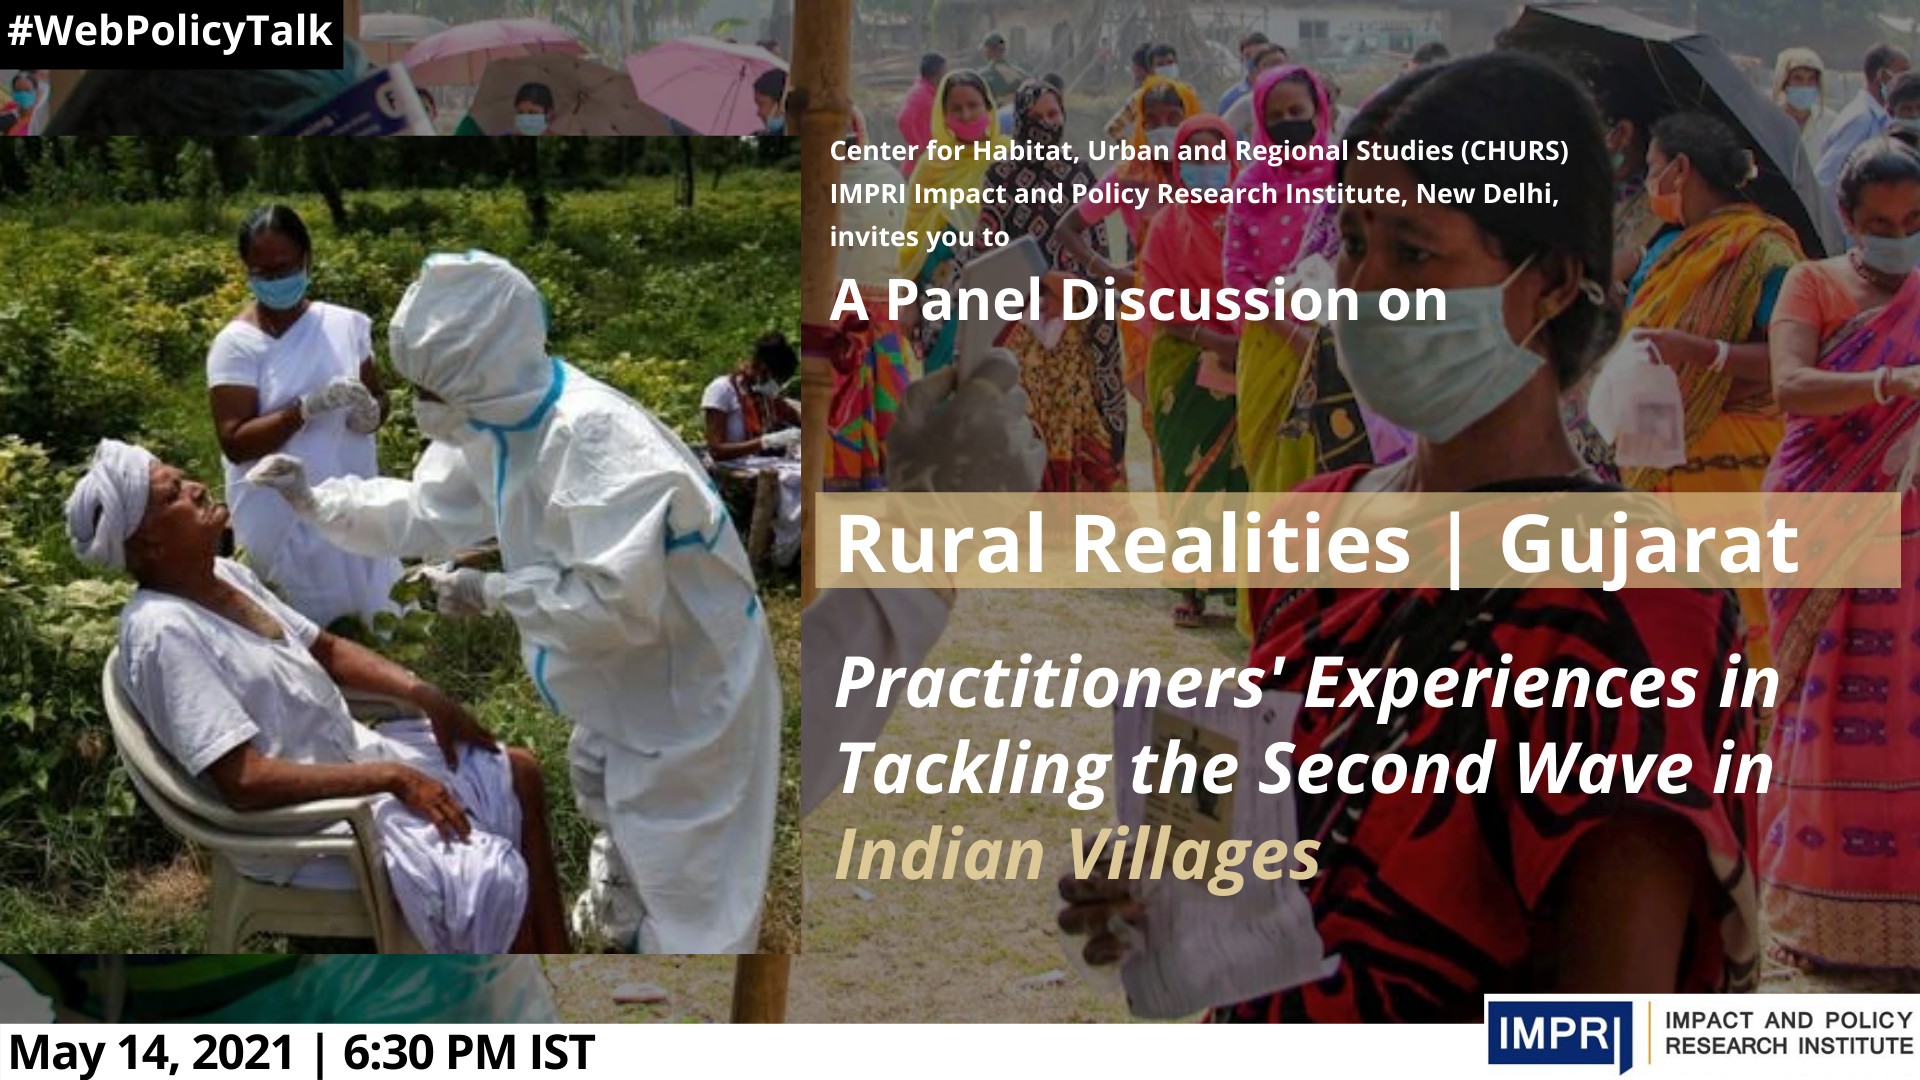 Rural Realities   Gujarat Practitioners' Experiences in Tackling the Second Wave in Indian Villages